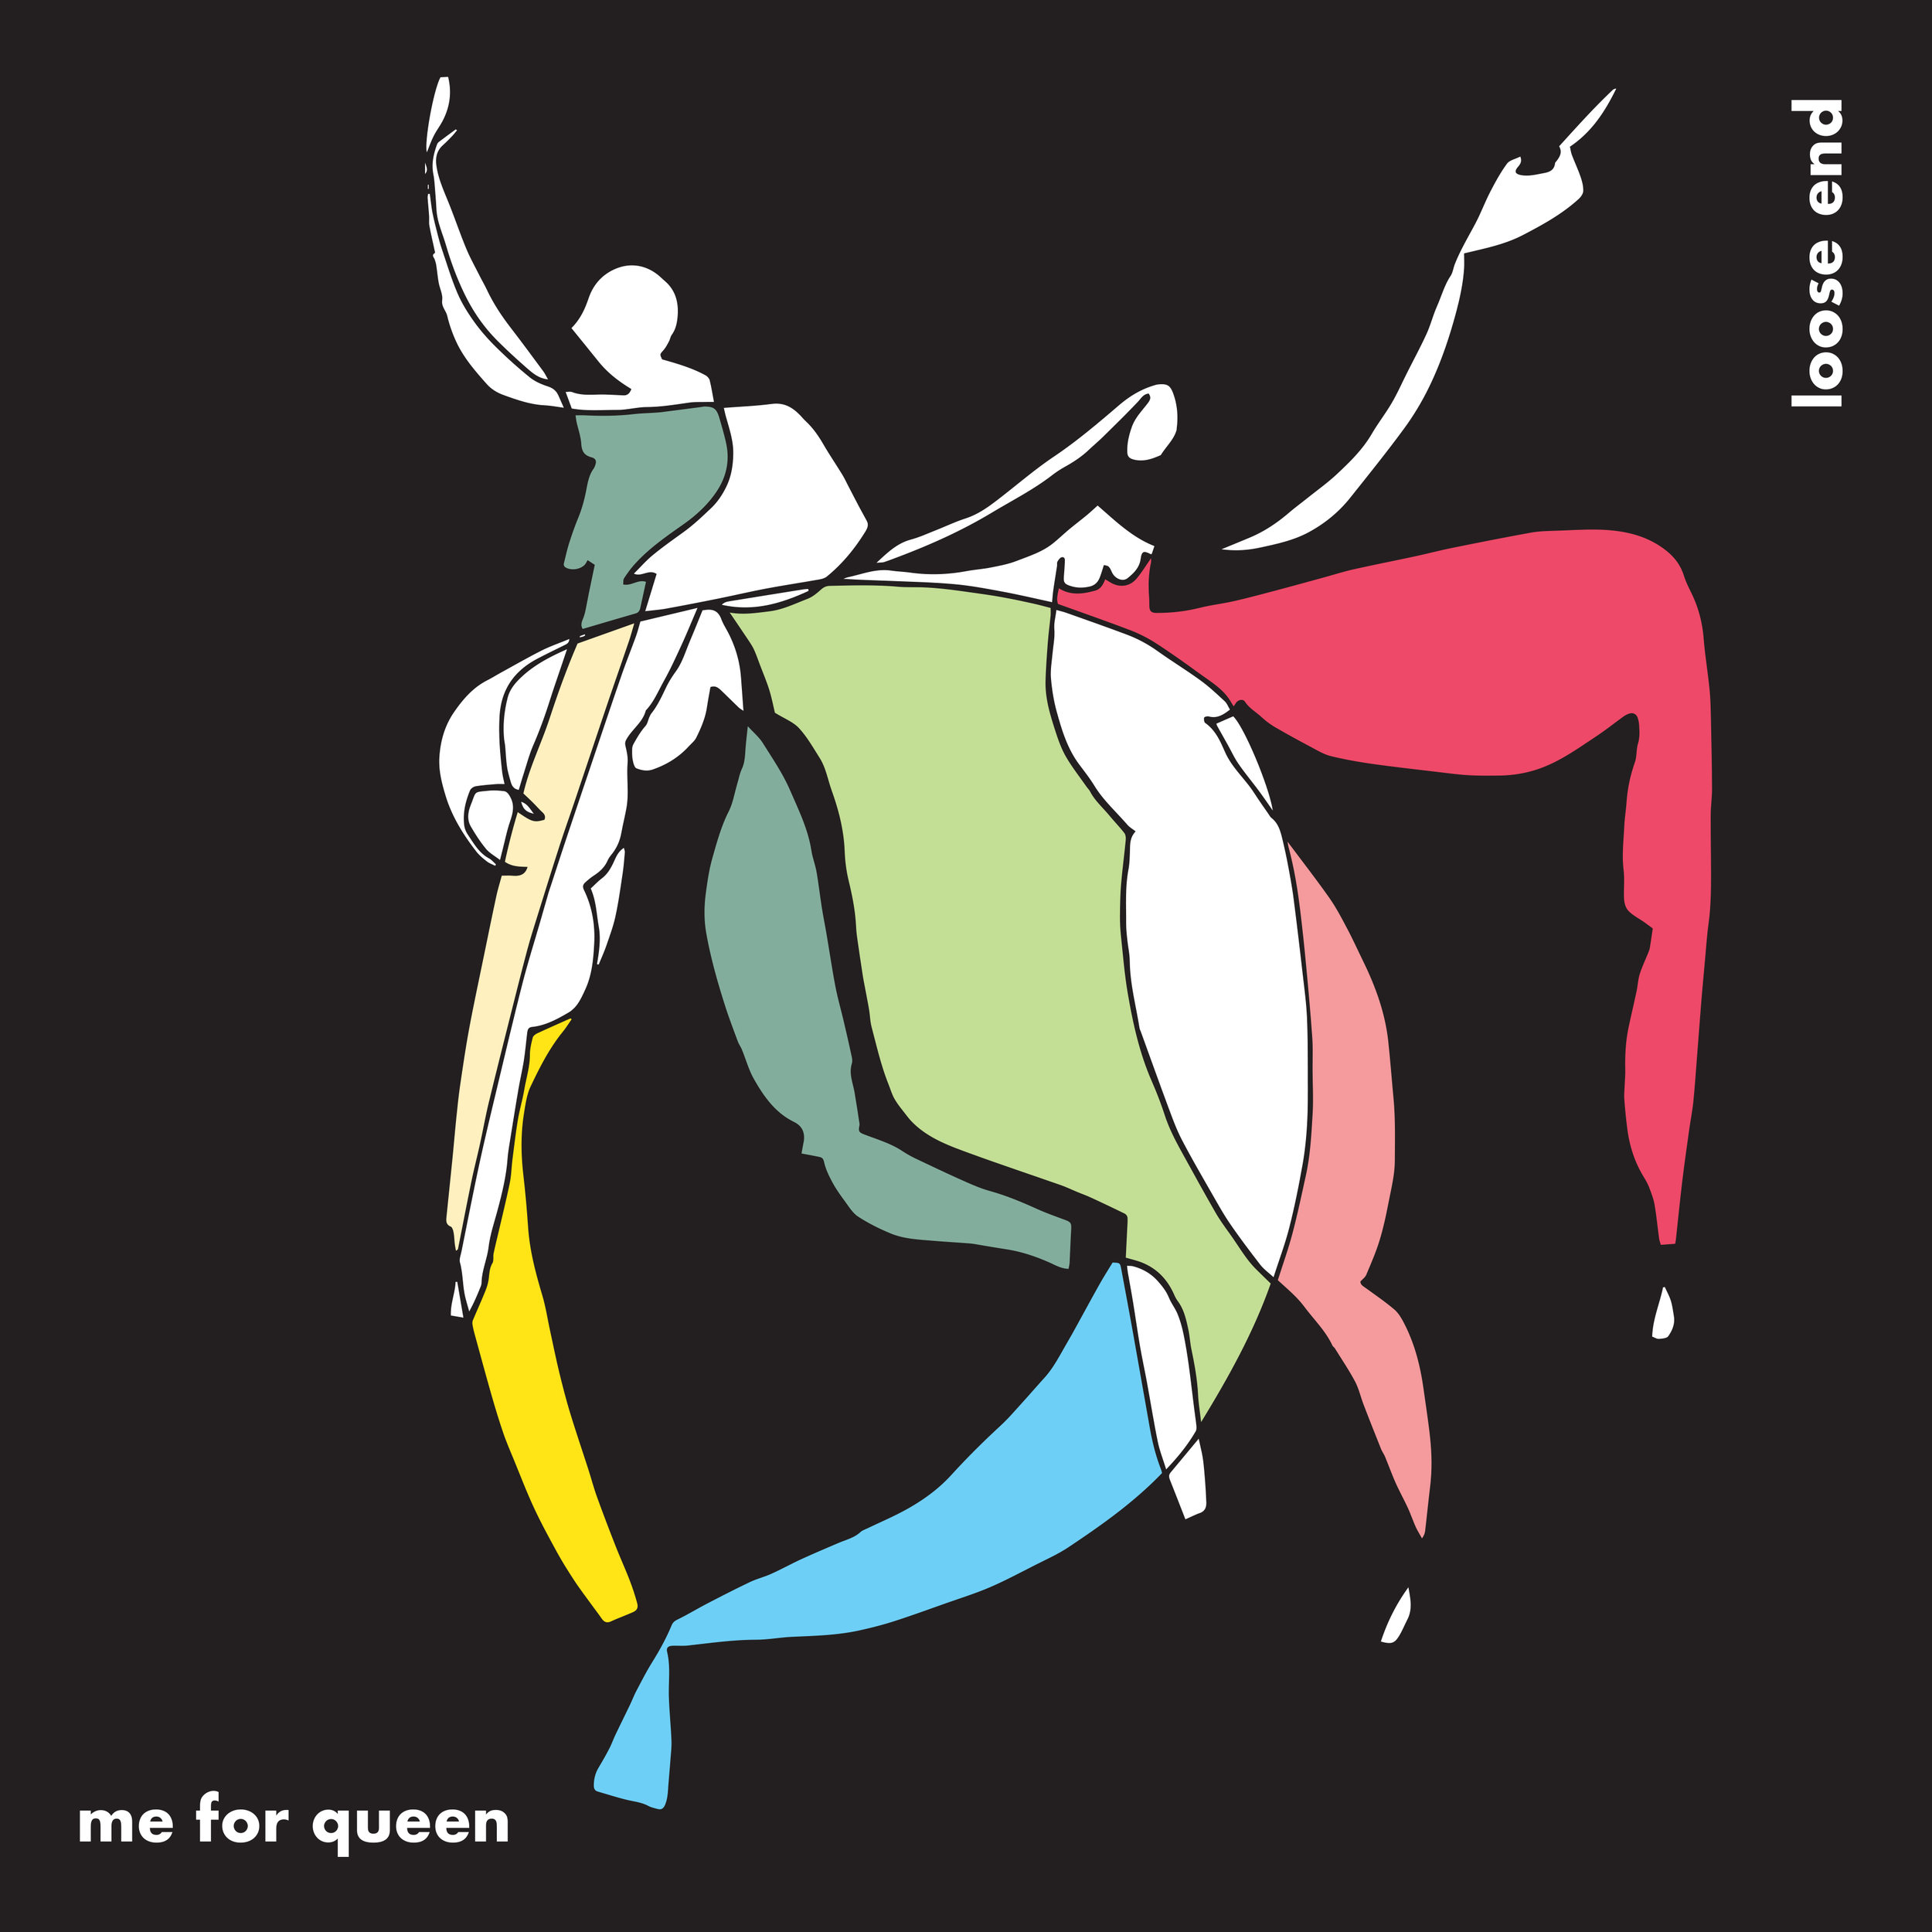 New album from Me for Queen. Tom Robinson's 6music Album of the Week.